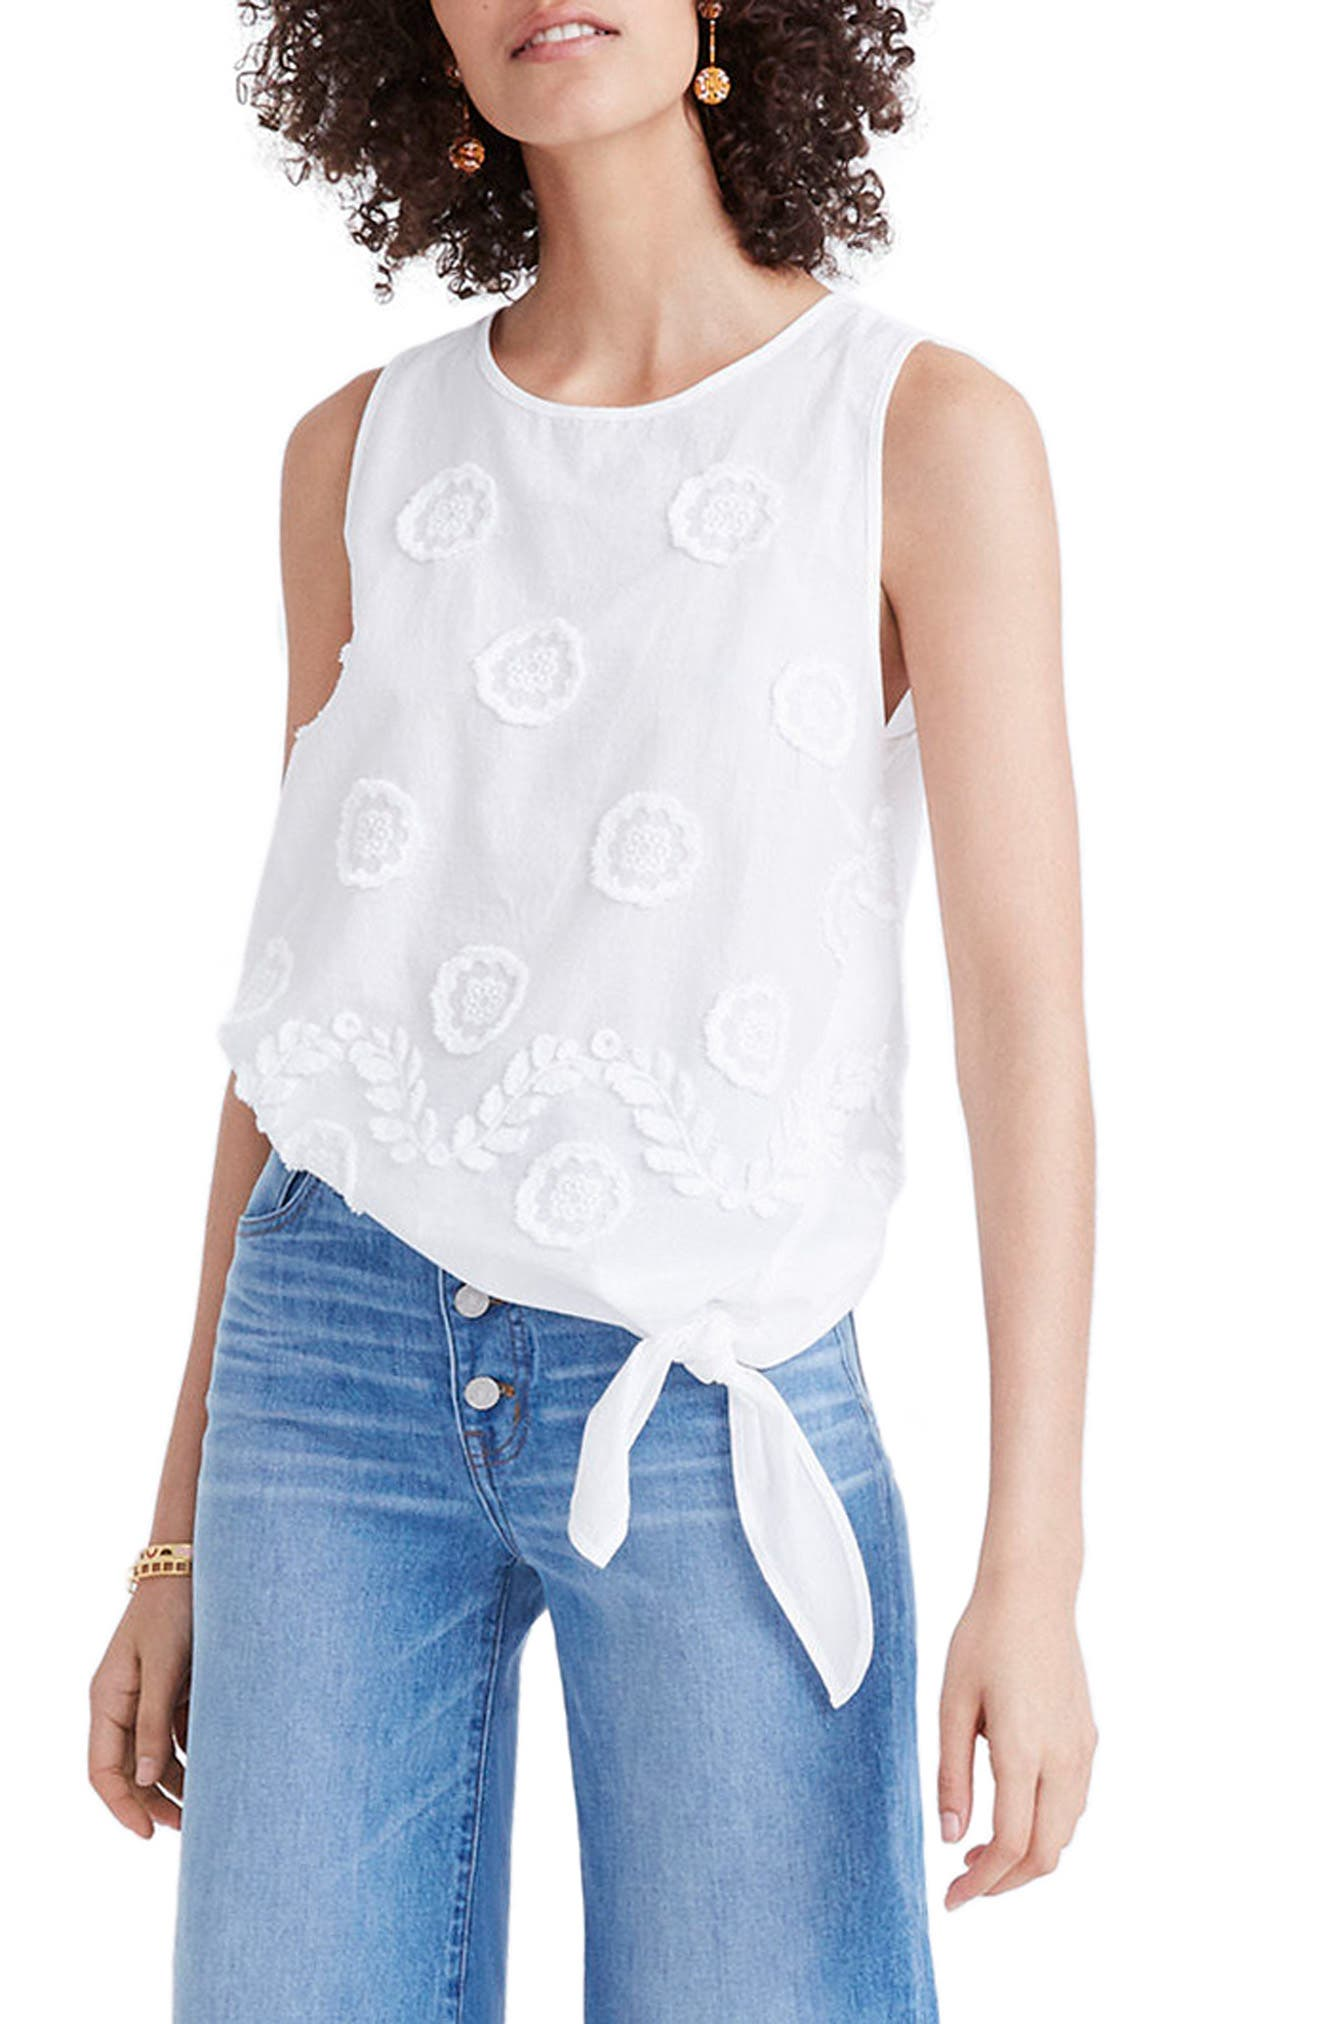 MADEWELL,                             Embroidered Side Tie Tank,                             Main thumbnail 1, color,                             101